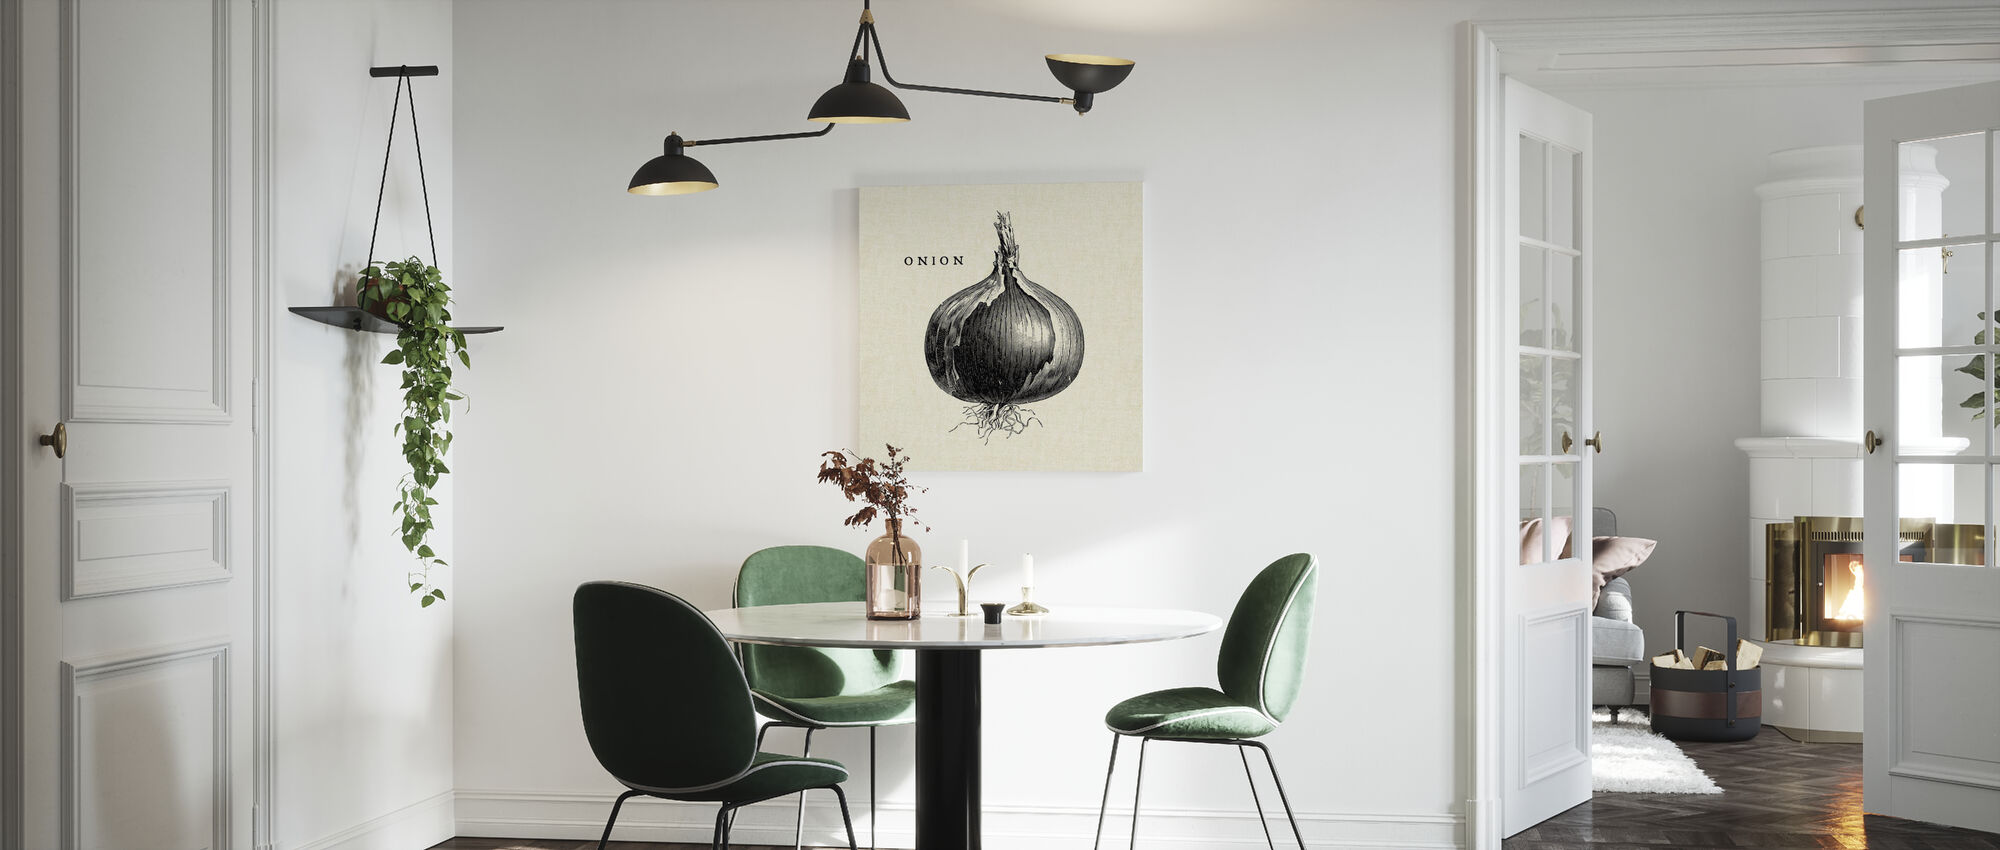 Kitchen Illustration - Onion - Canvas print - Kitchen